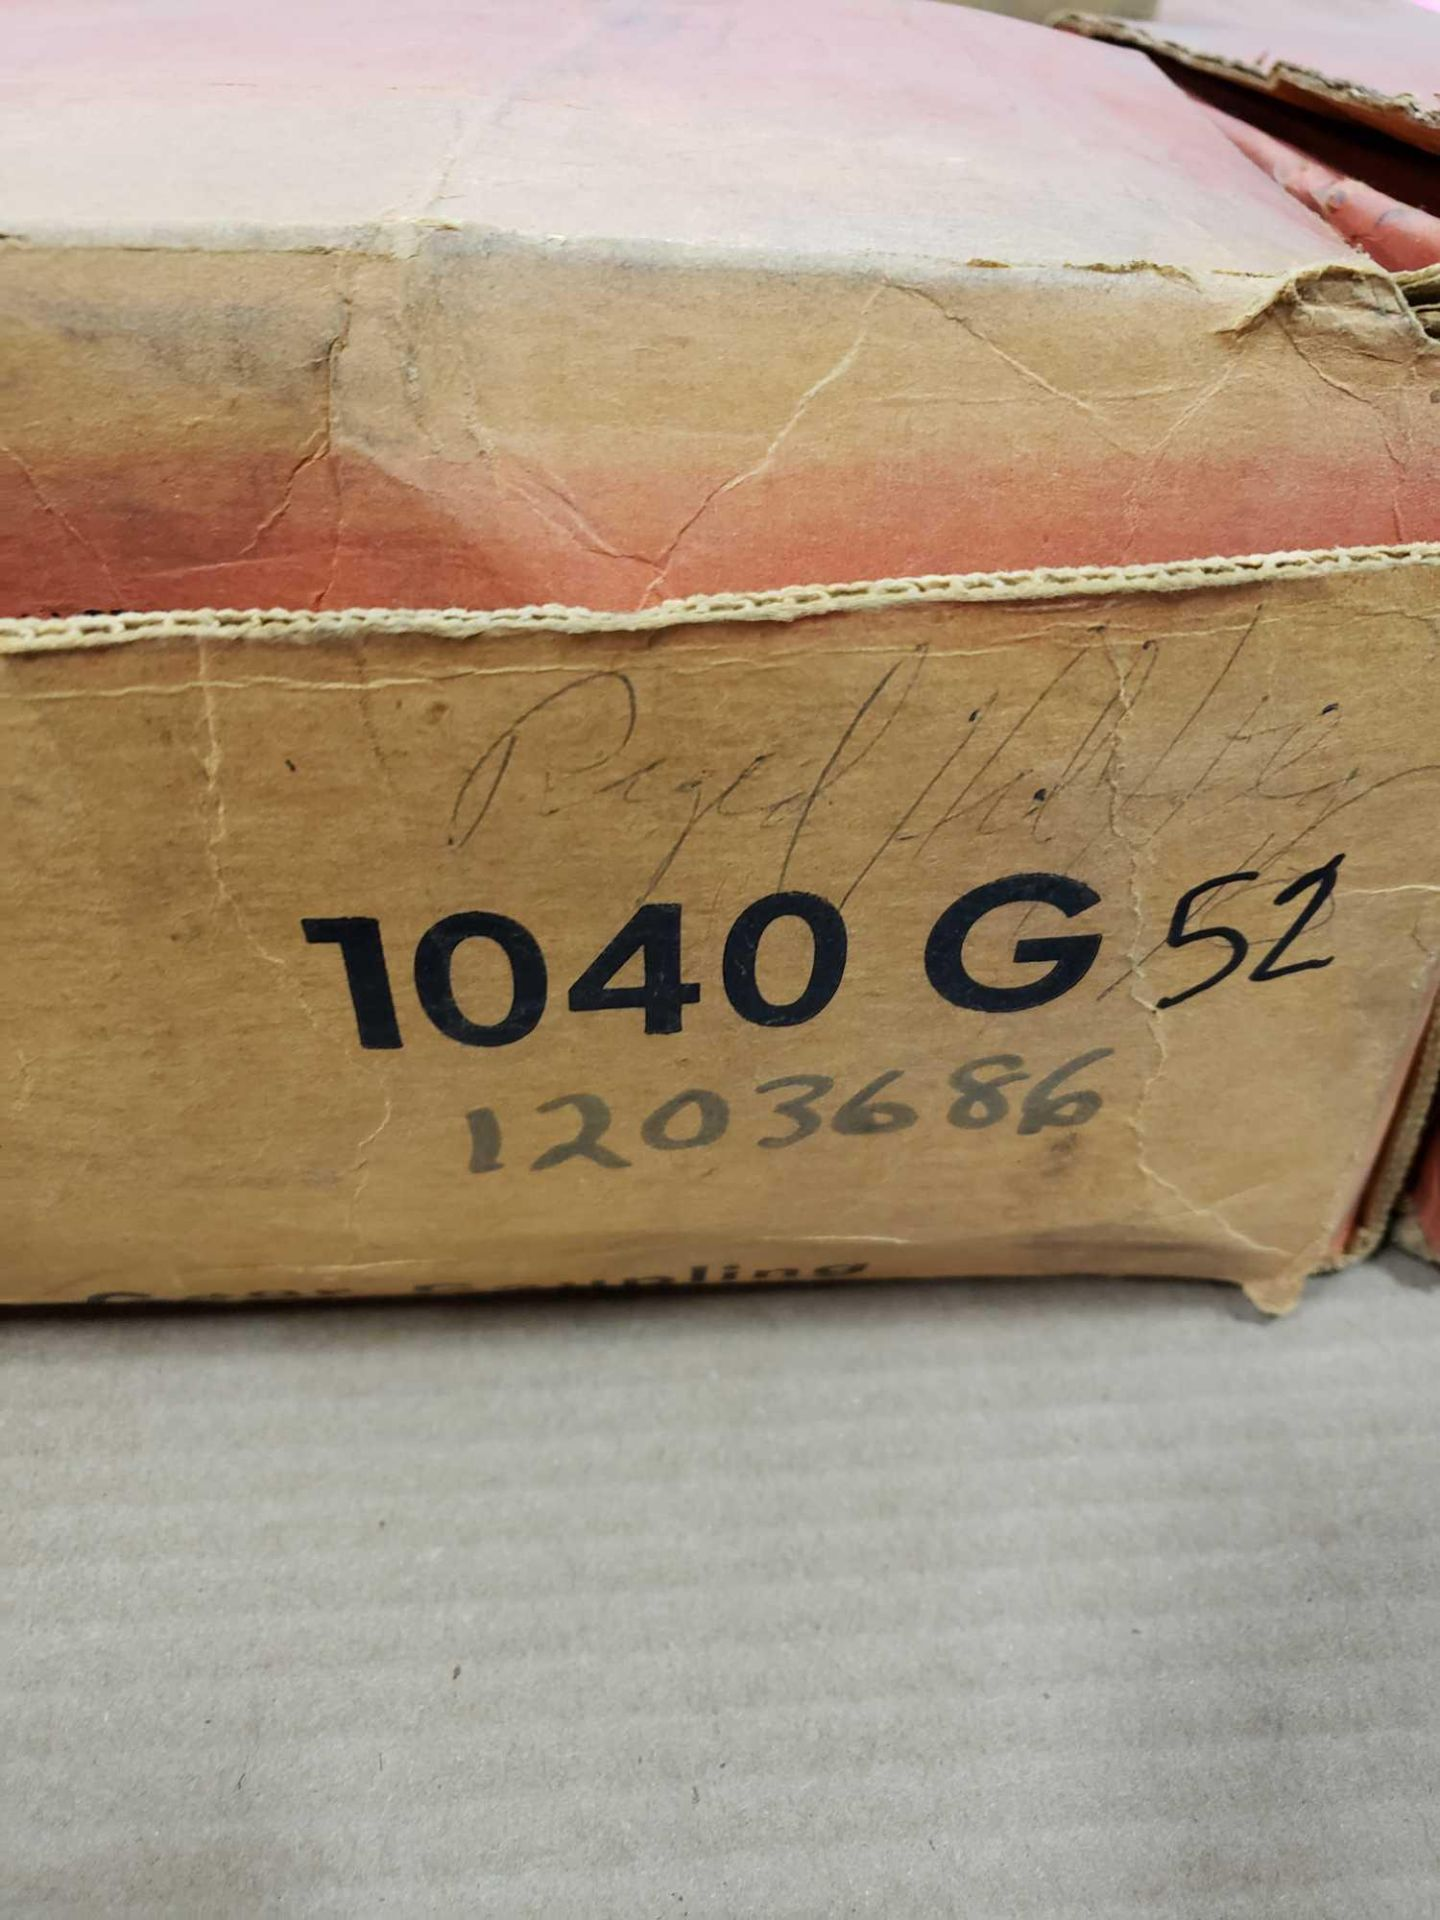 Lot 44 - Falk 1040G52 coupling component. New in box.